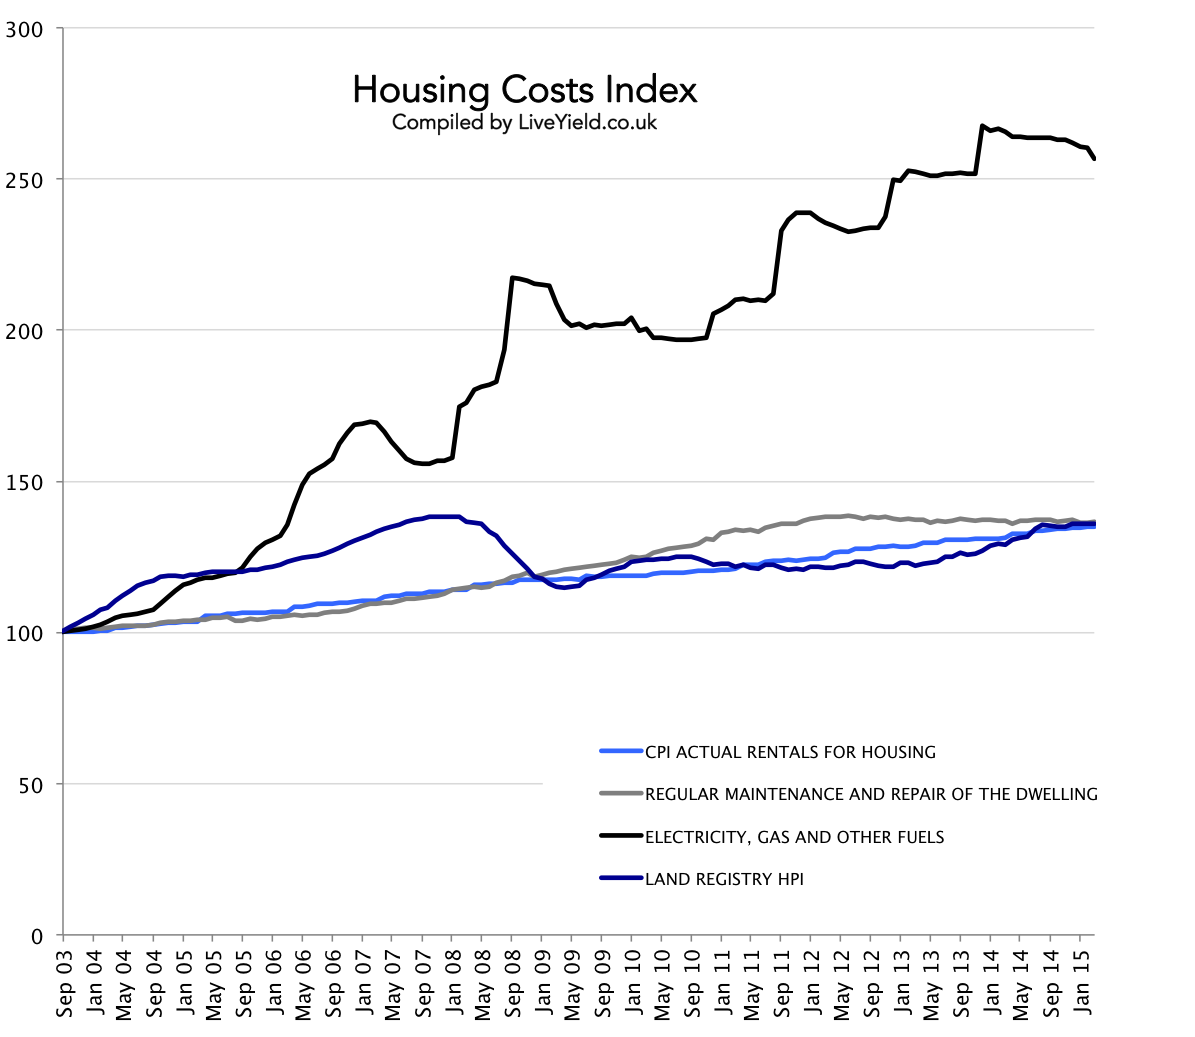 House prices in England and Wales versus rents and other cost of home ownership